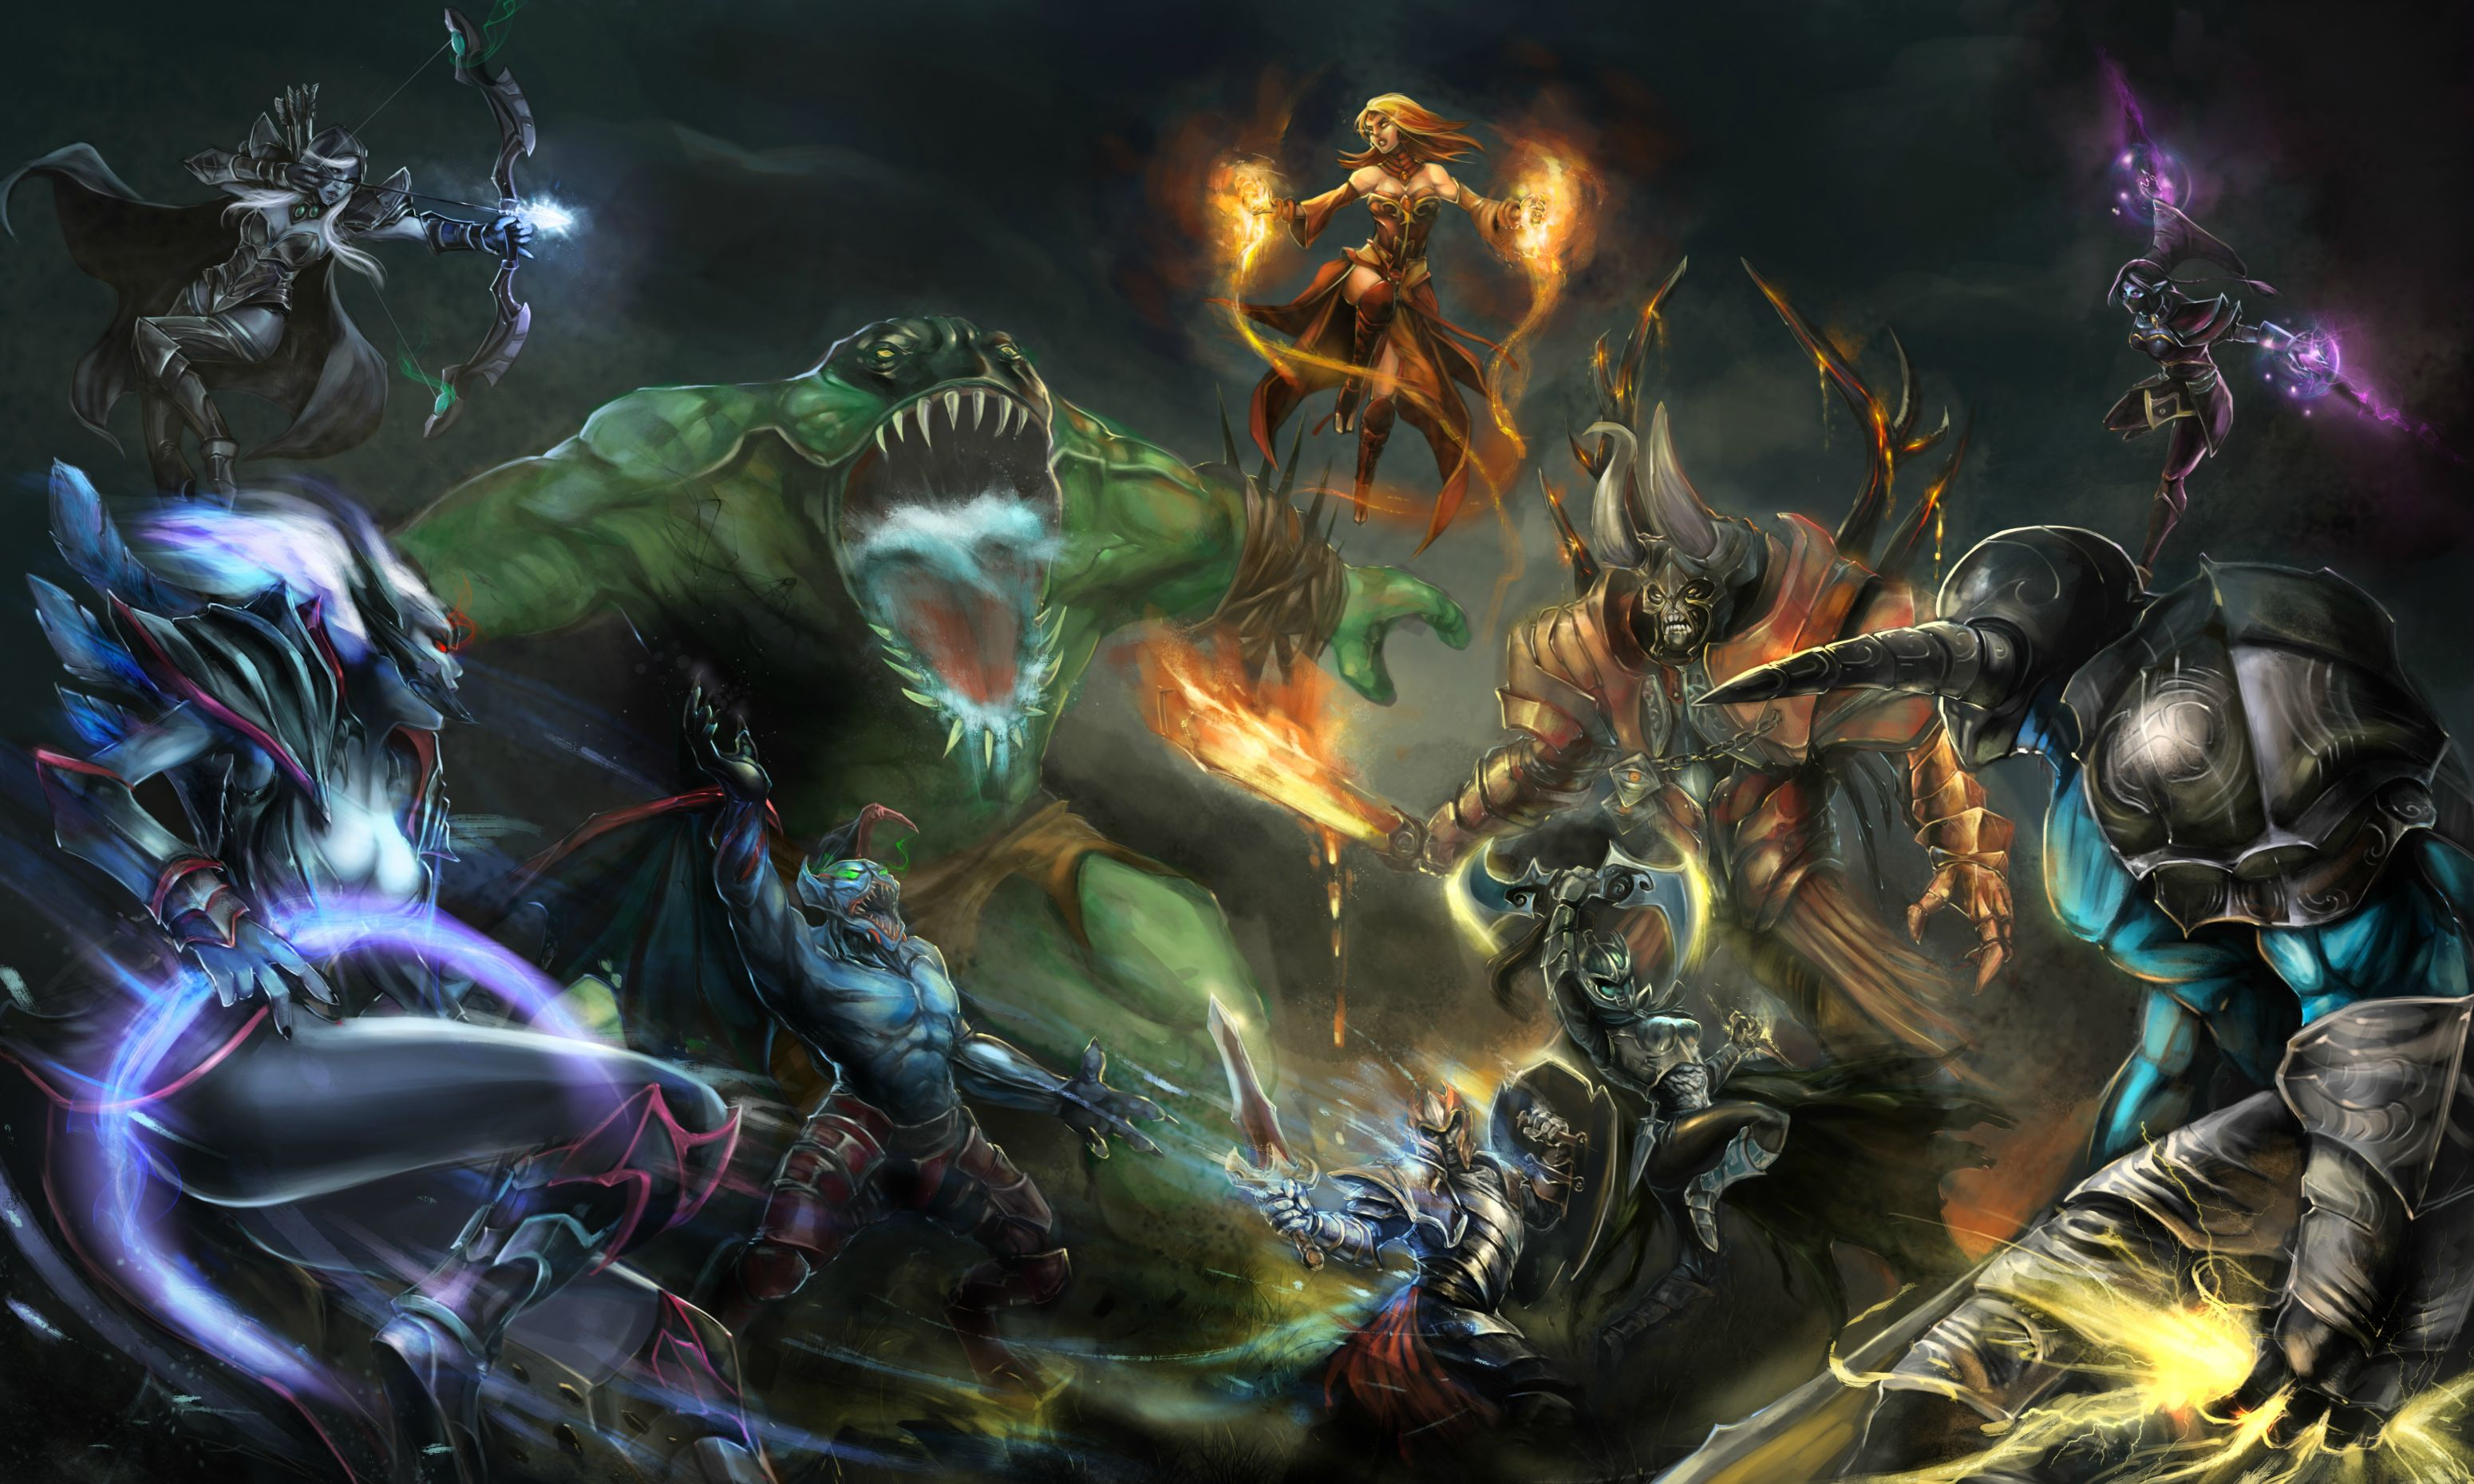 Dota-HD-Desktop-Backgrounds-Images-and-Pictures-wallpaper-wp3604945